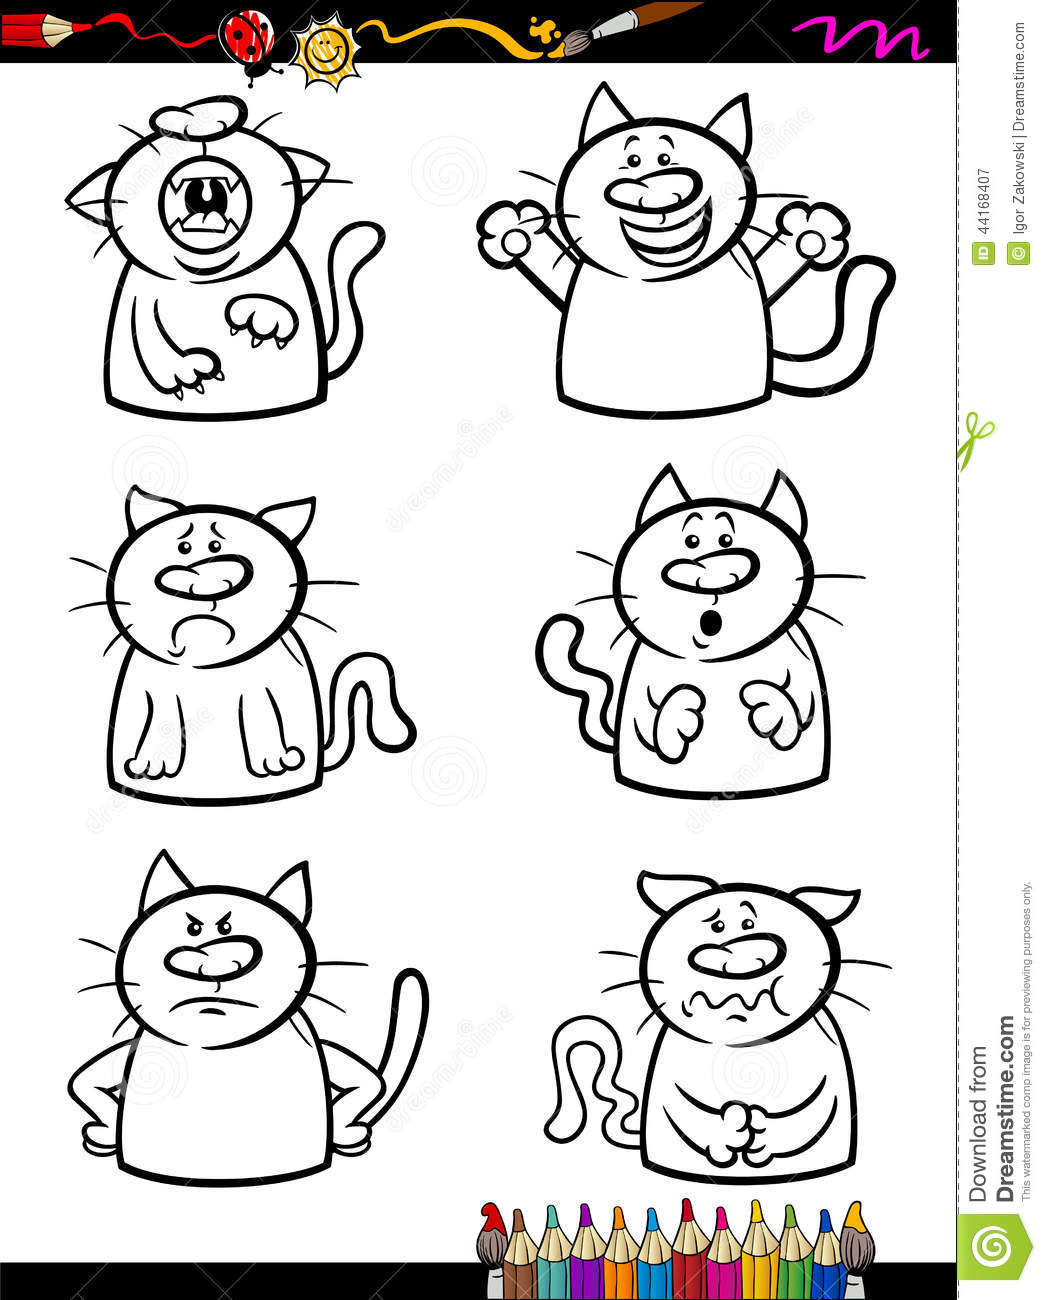 Cats emotion set cartoon coloring book stock vector for Emotions coloring pages for preschoolers